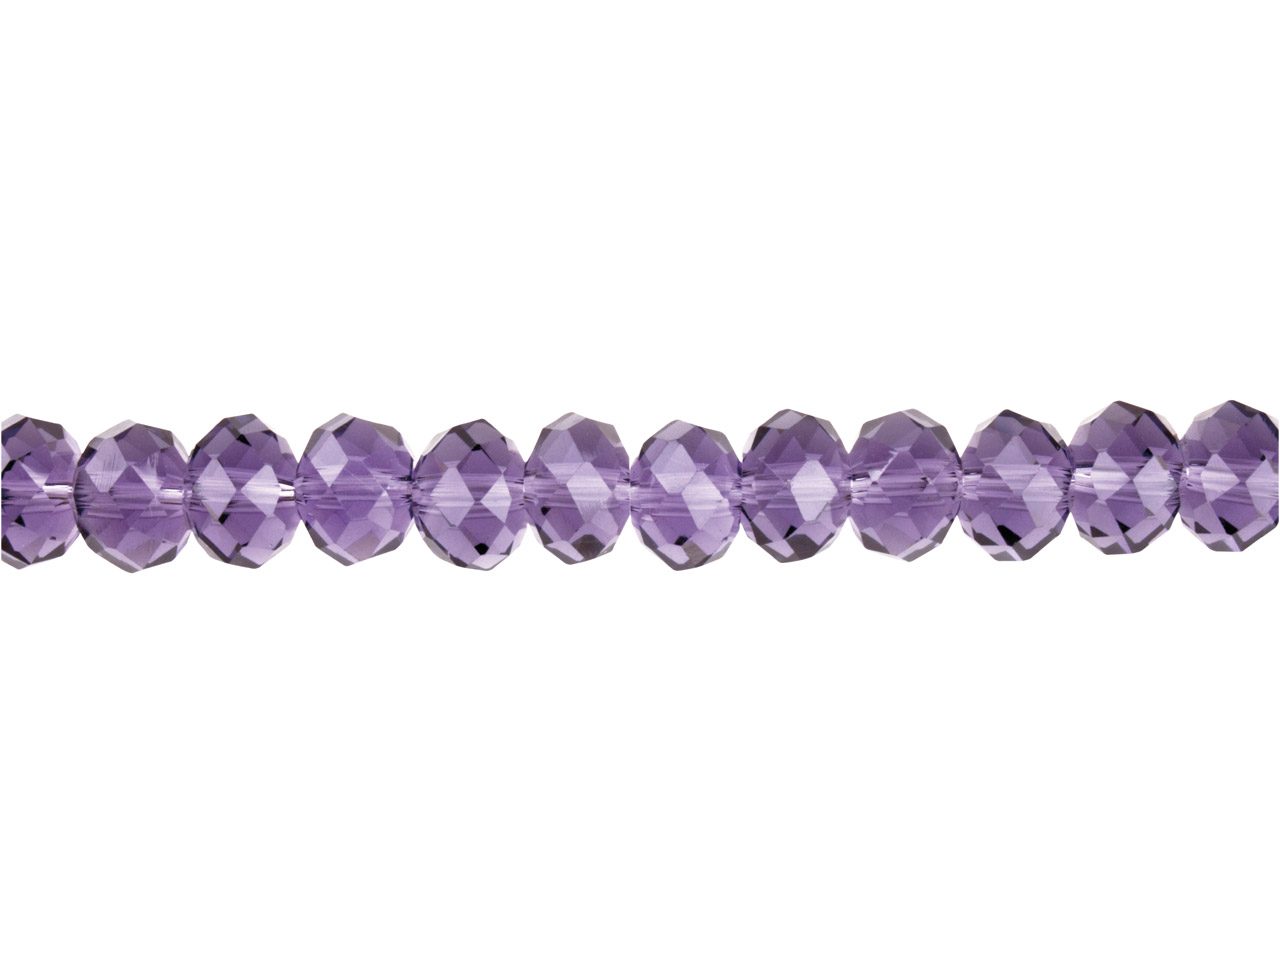 Crystal Faceted Rondelle Purple    8x10mm Beads, 16